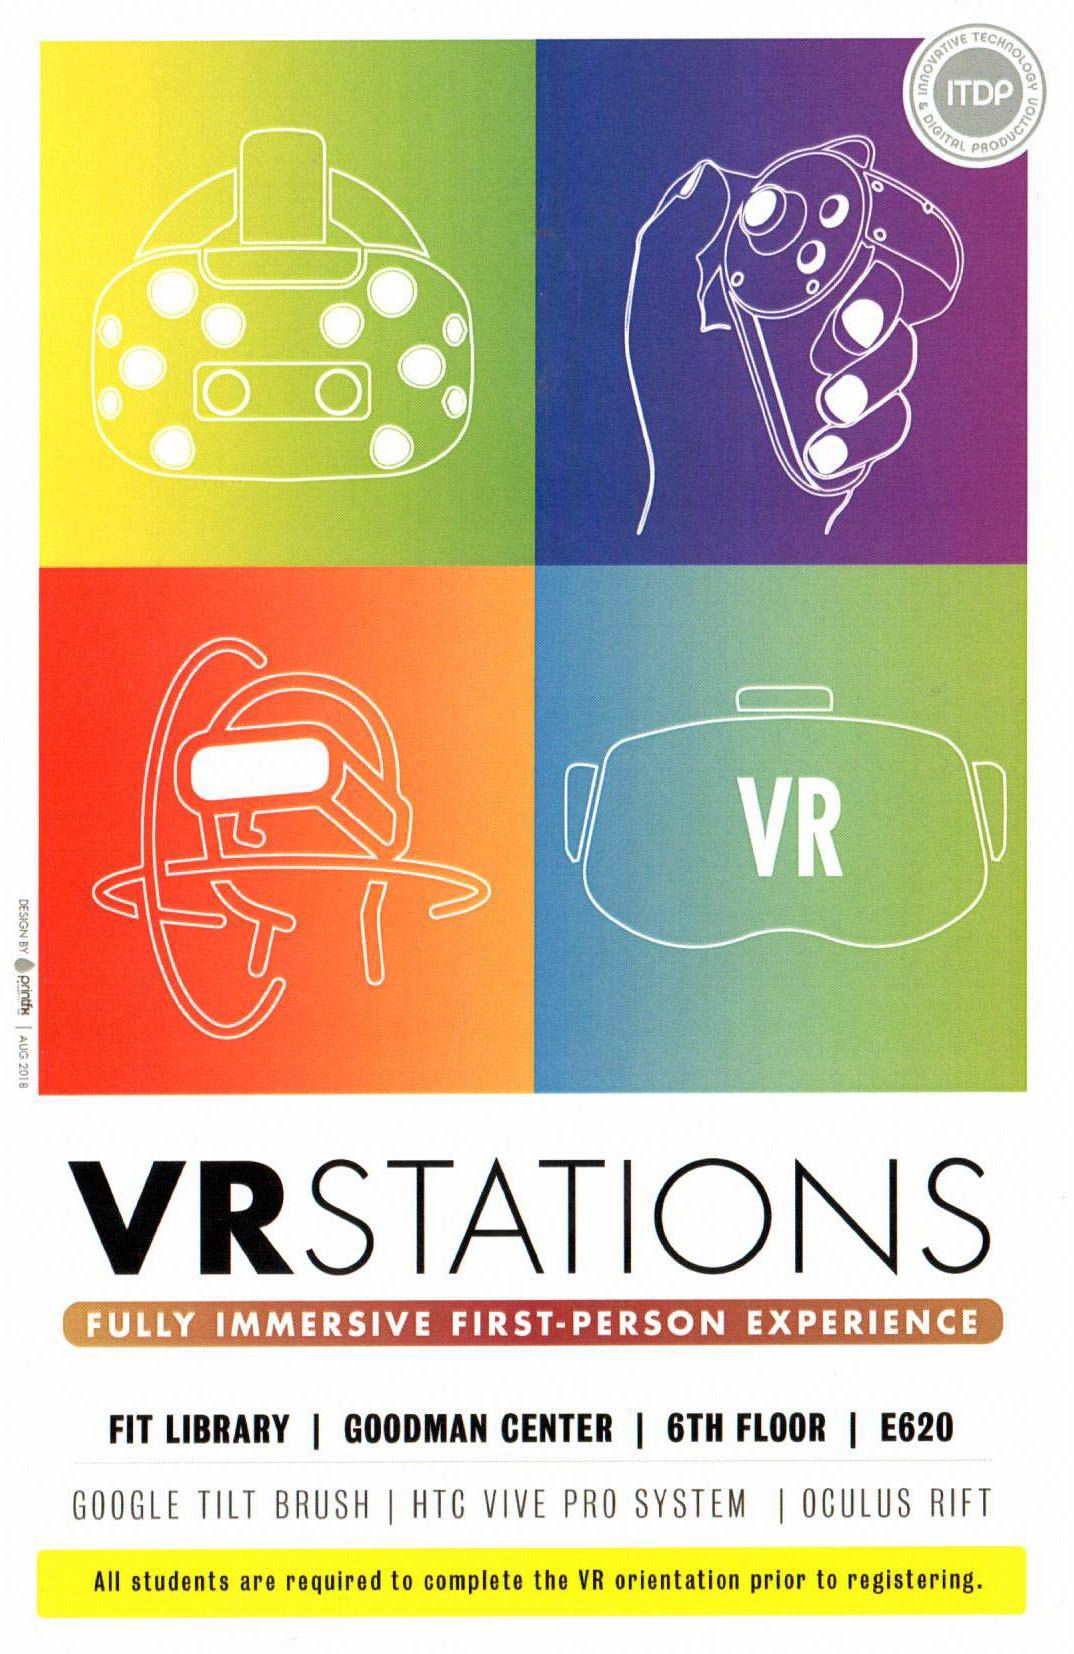 Student VR Stations promotional flyer